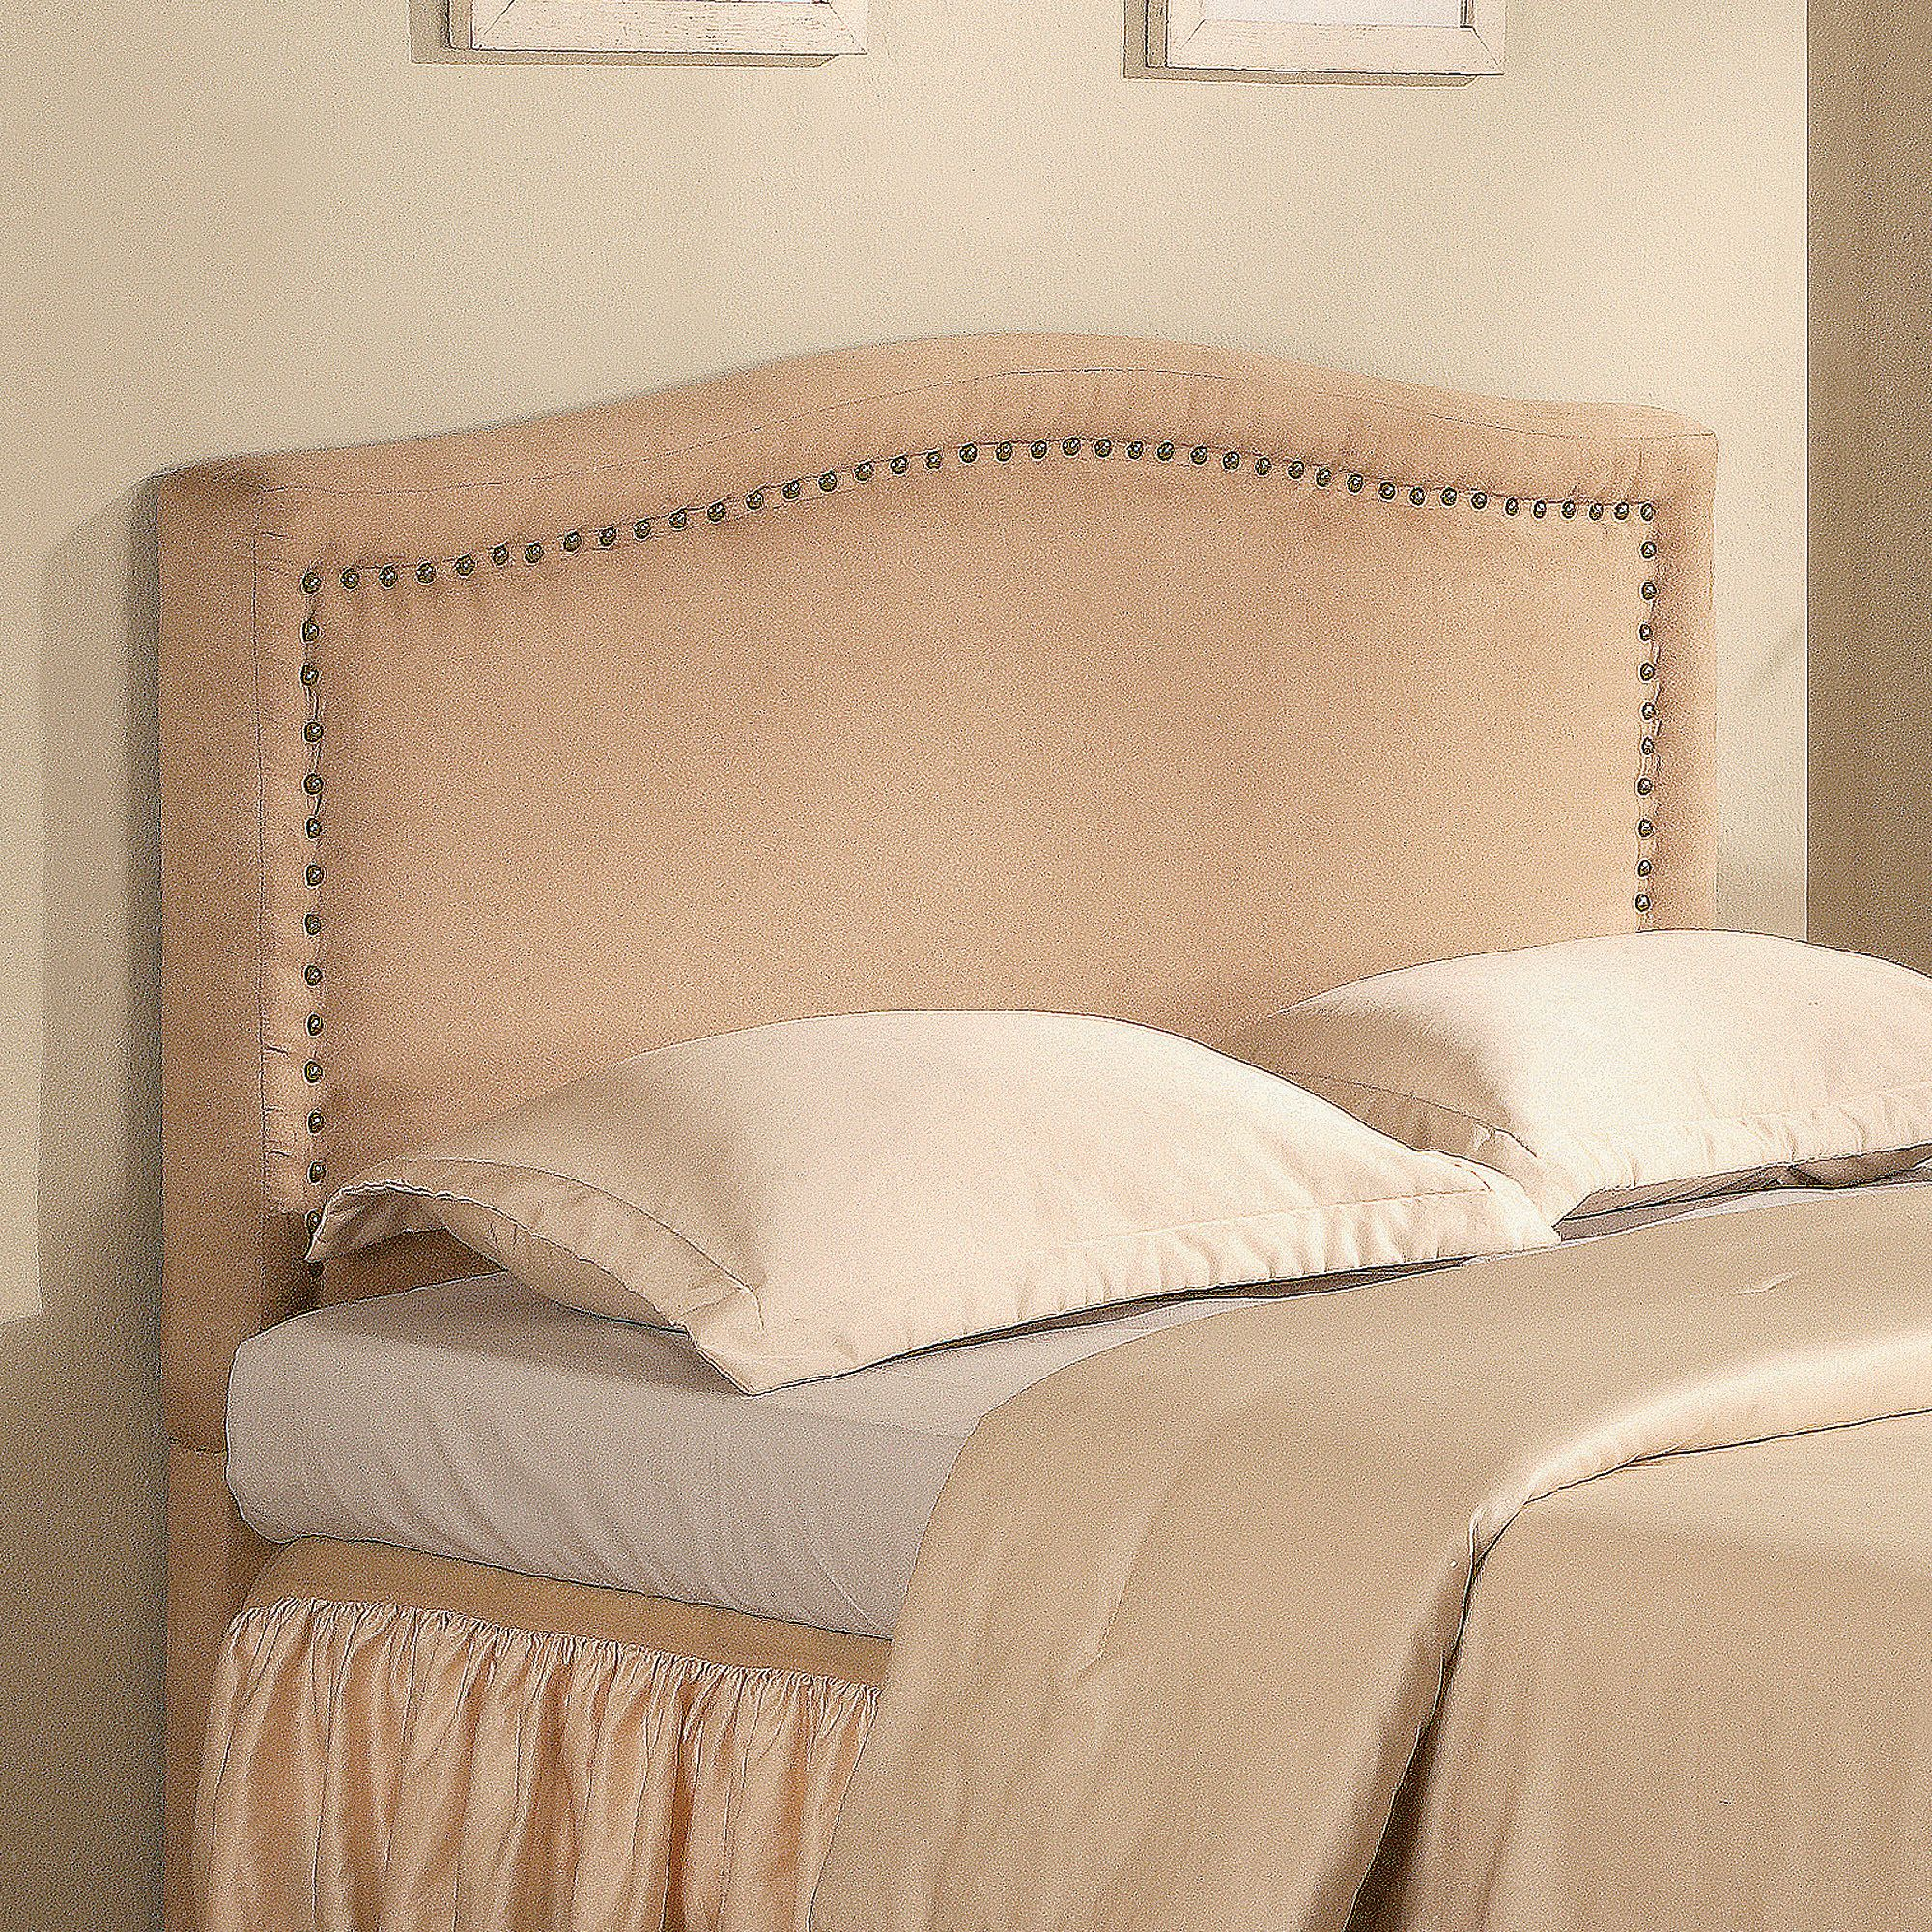 coaster queen upholstered headboard with nailhead trim, beige, Headboard designs